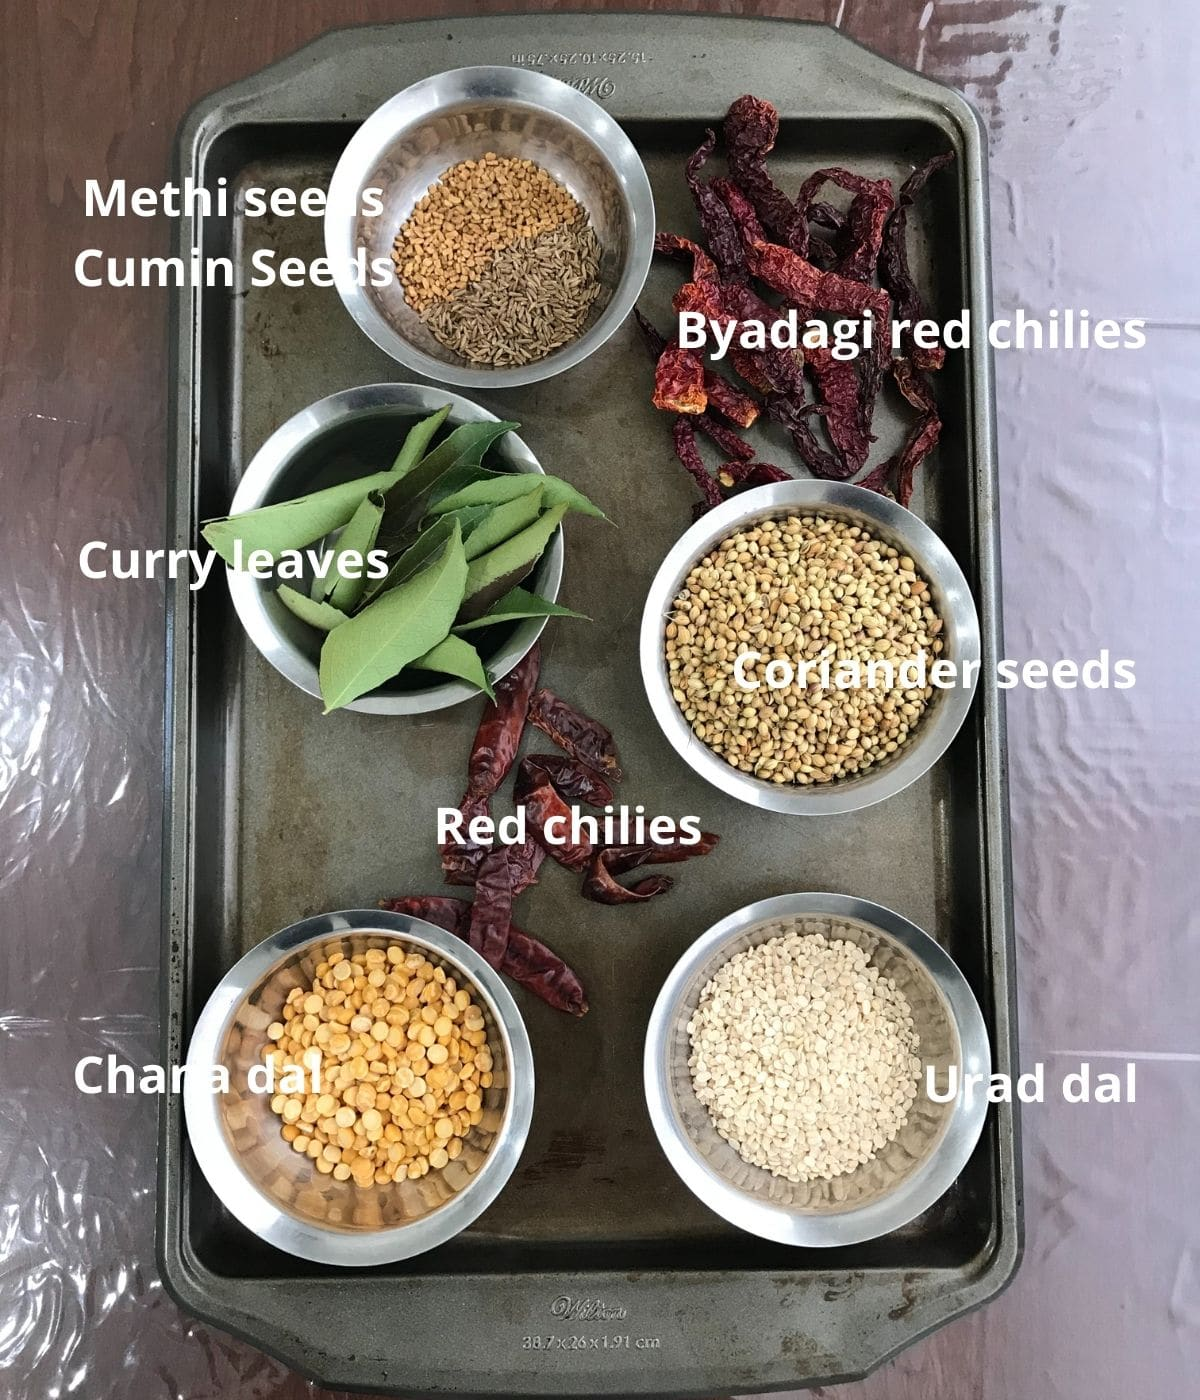 A tray is filled with sambar powder ingredients like red chilies, coriander seeds, and urad dal